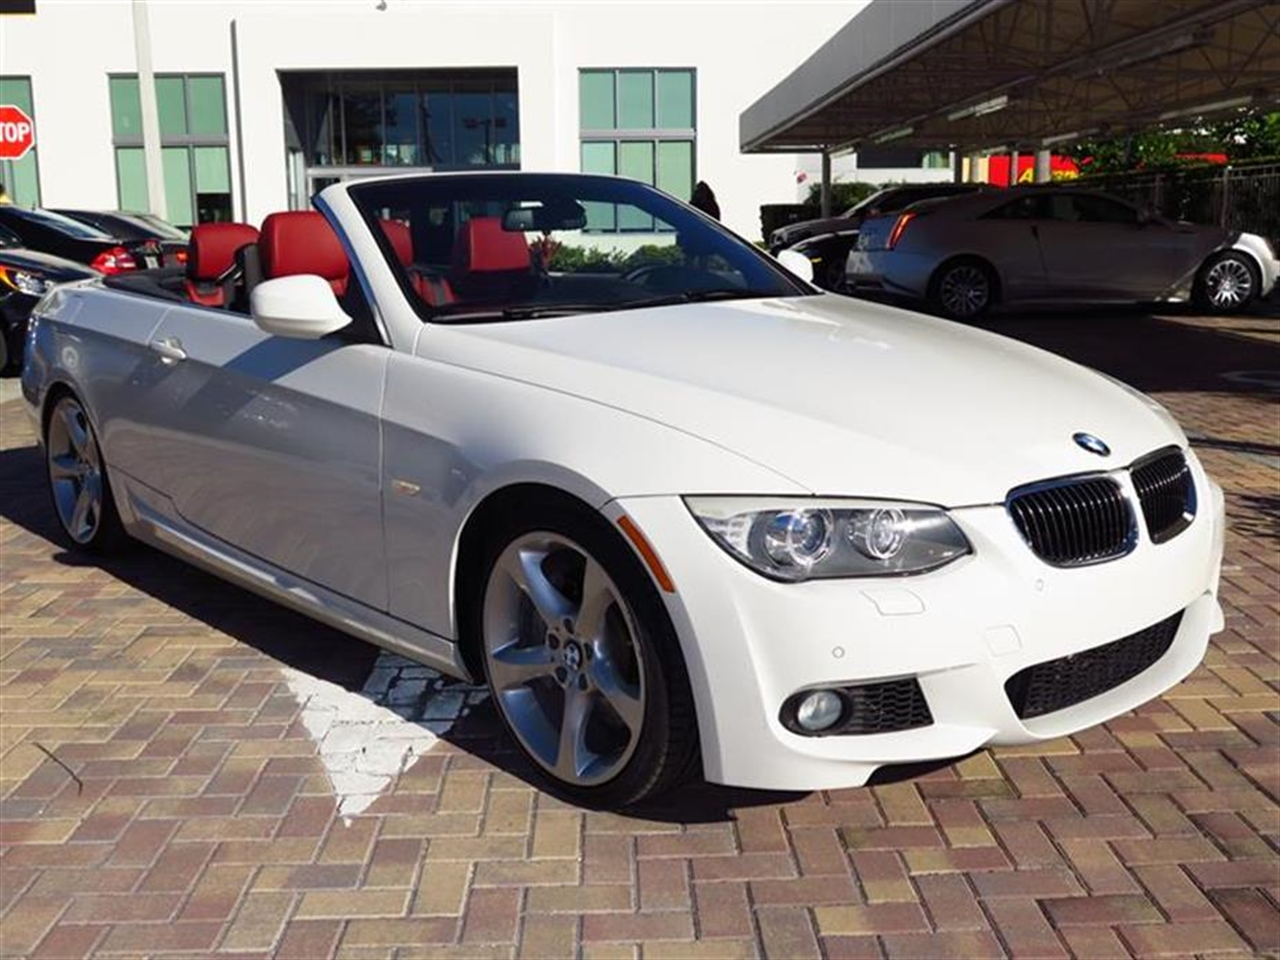 2012 BMW 3 SERIES 2dr Conv 335i 20670 miles 10-way power front bucket seats with 2-way manual head